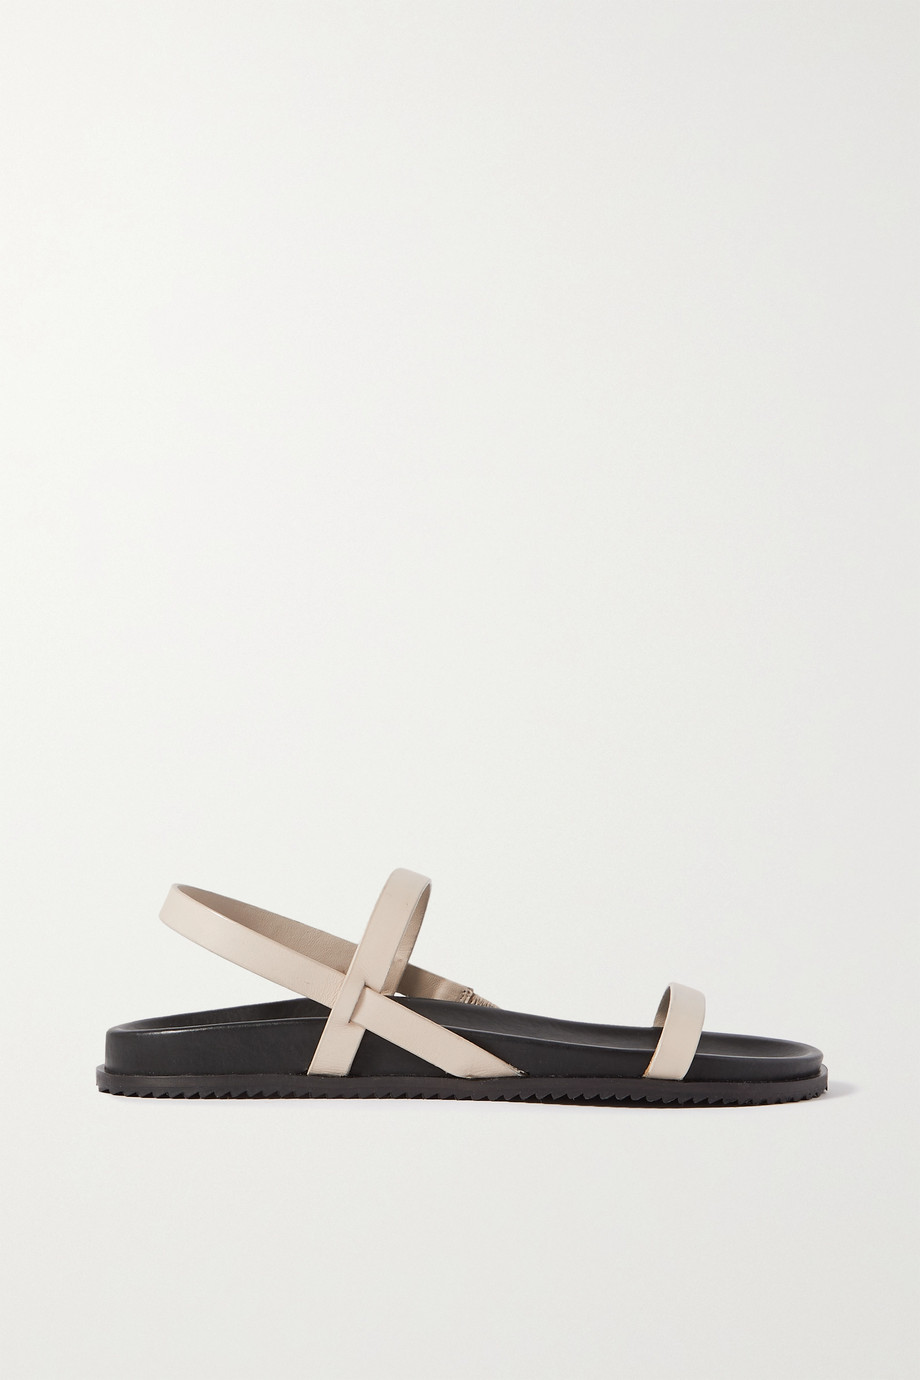 ST. AGNI + NET SUSTAIN Gio two-tone leather slingback sandals